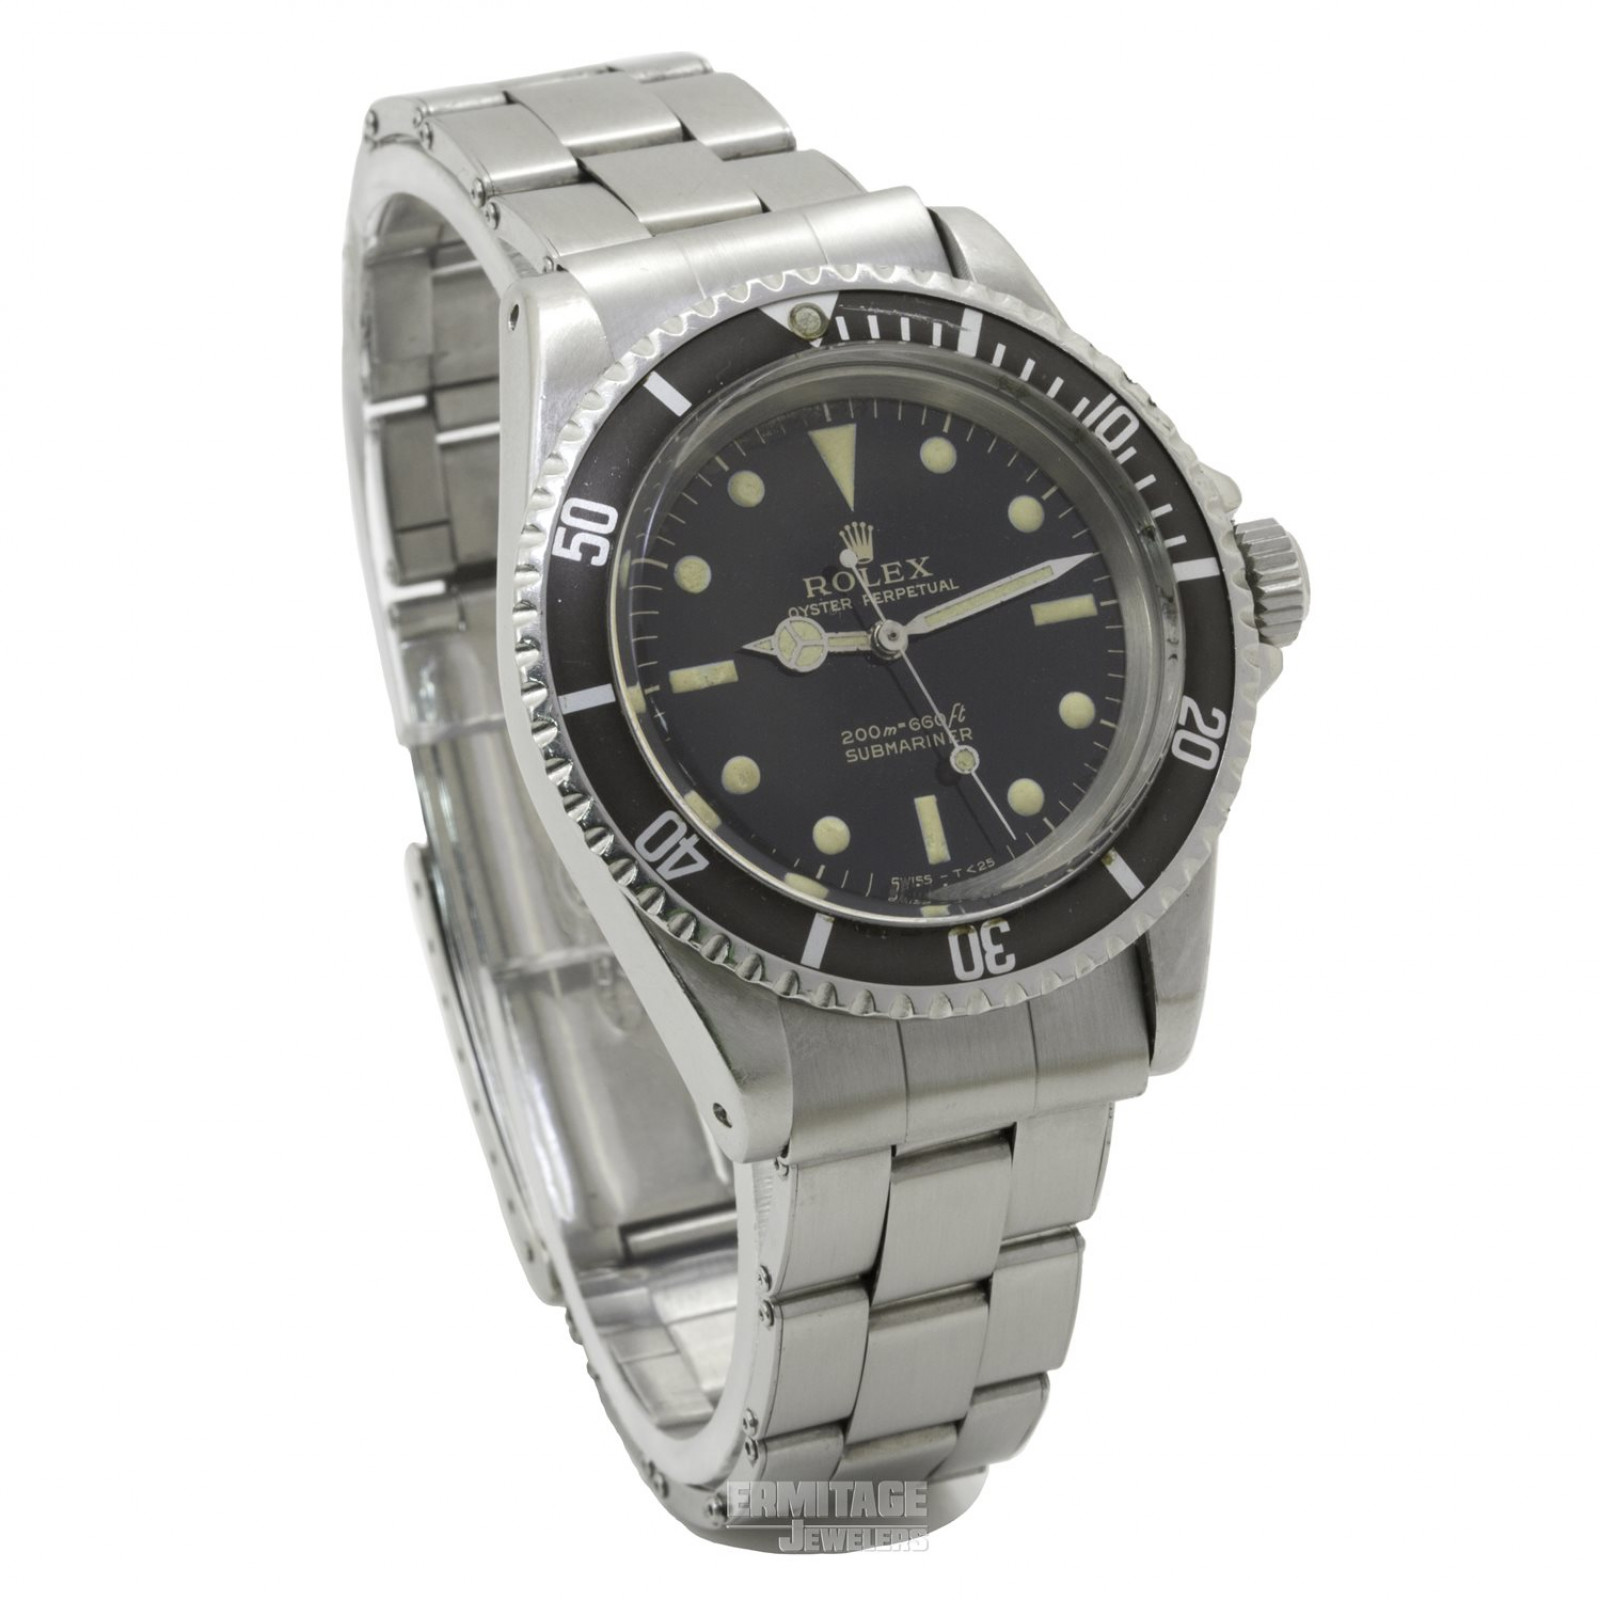 Rolex Submariner 5513 with Gilt Dial 40 mm